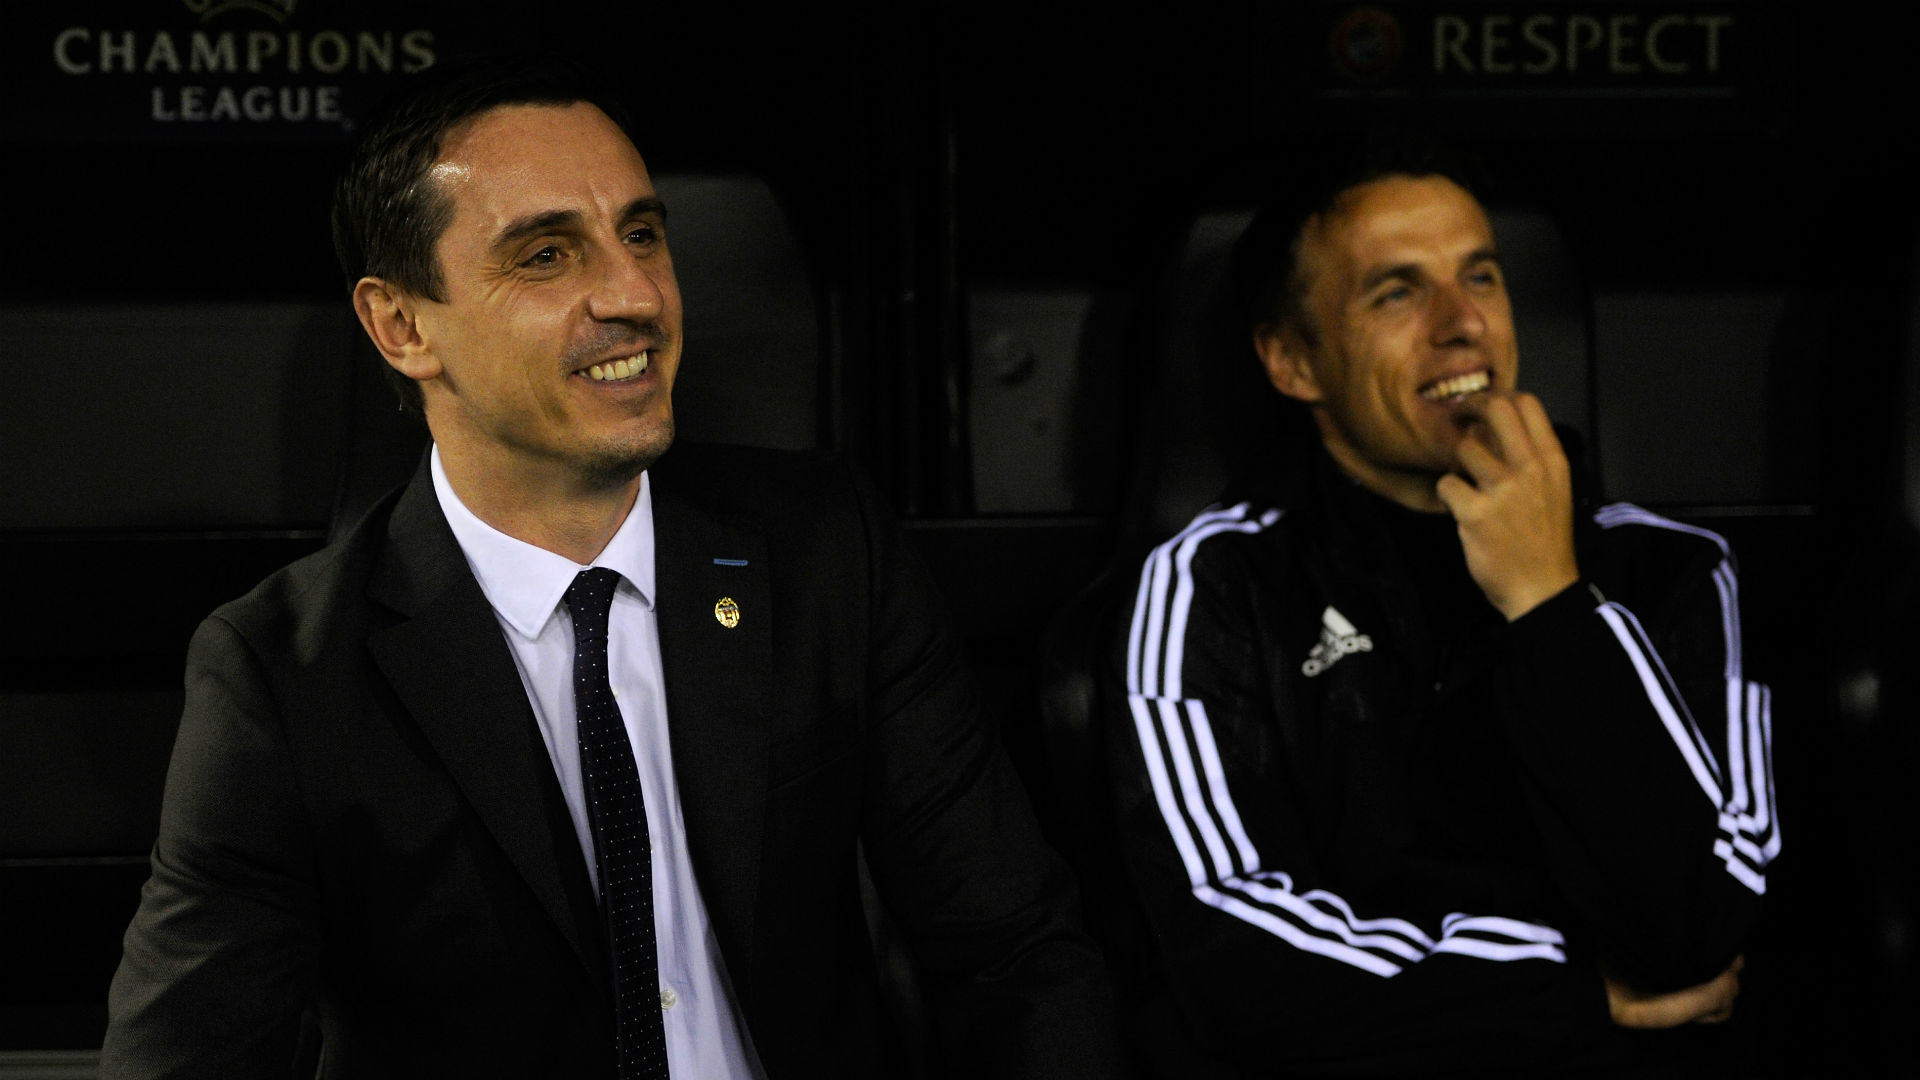 'That's why I'm not a manager!' – Gary Neville reveals how he differs from brother Phil in wake of Miami hiring